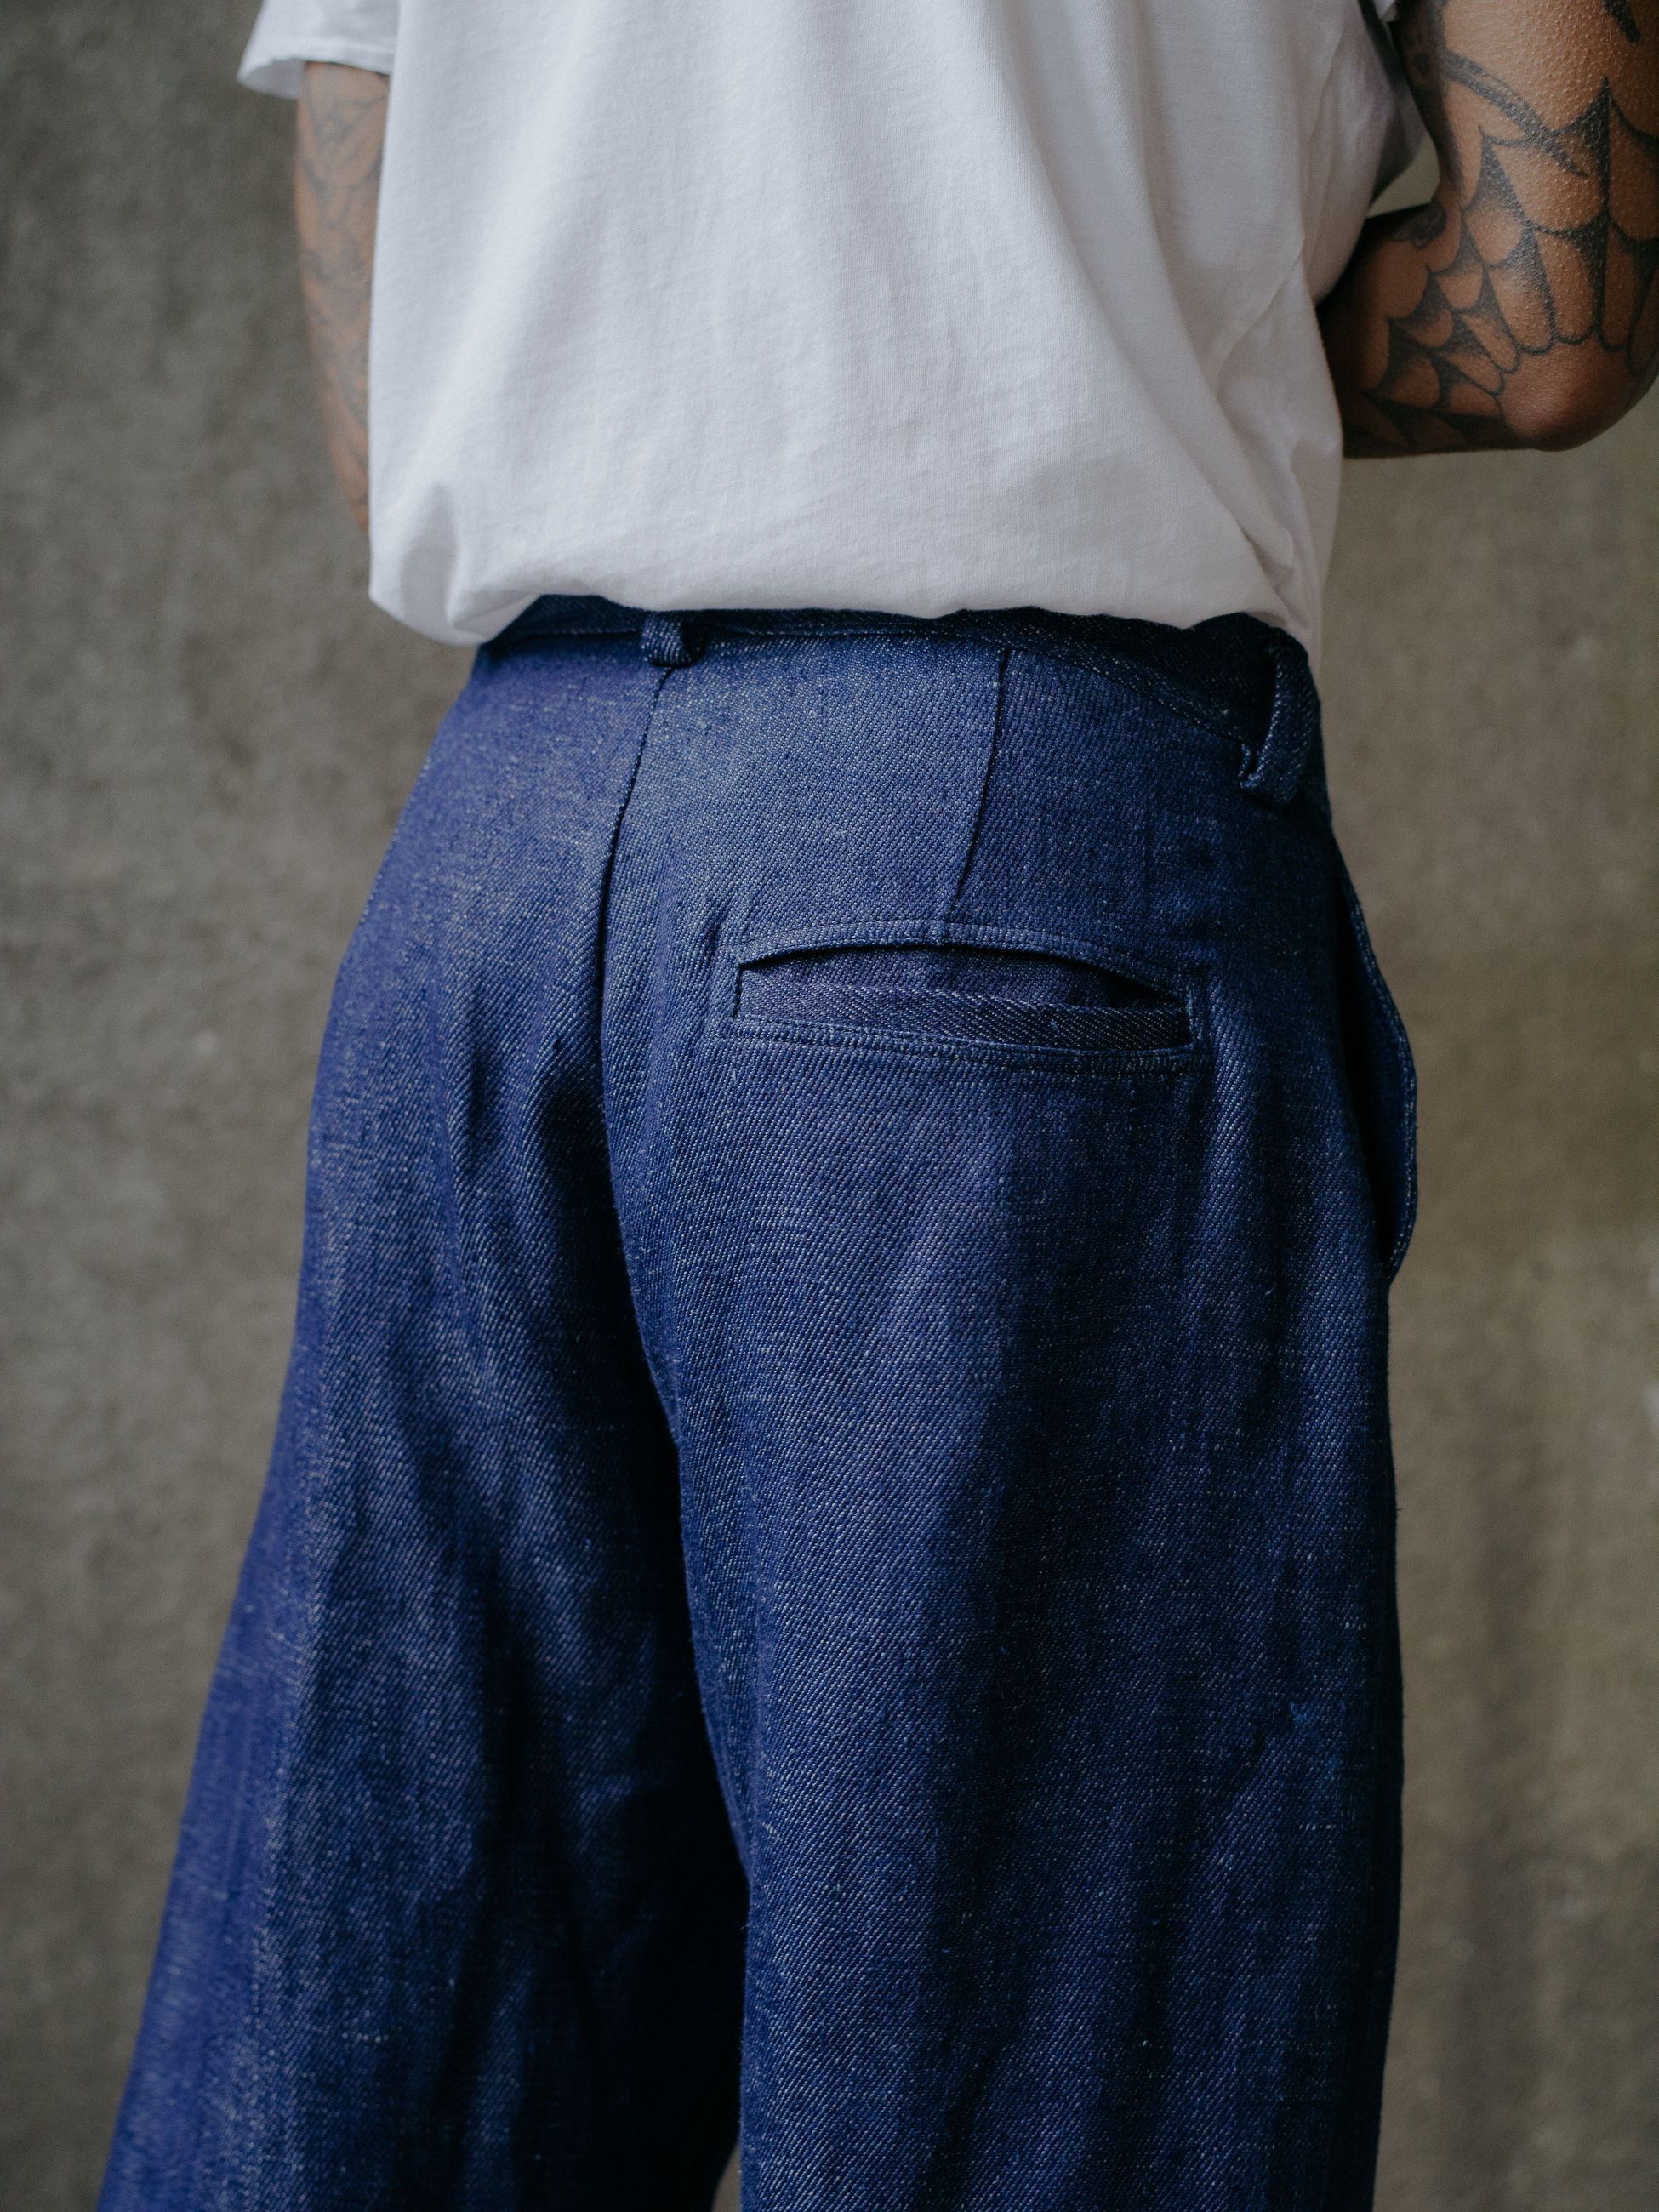 evan-kinori-single-pleat-pant-hemp-denim-5